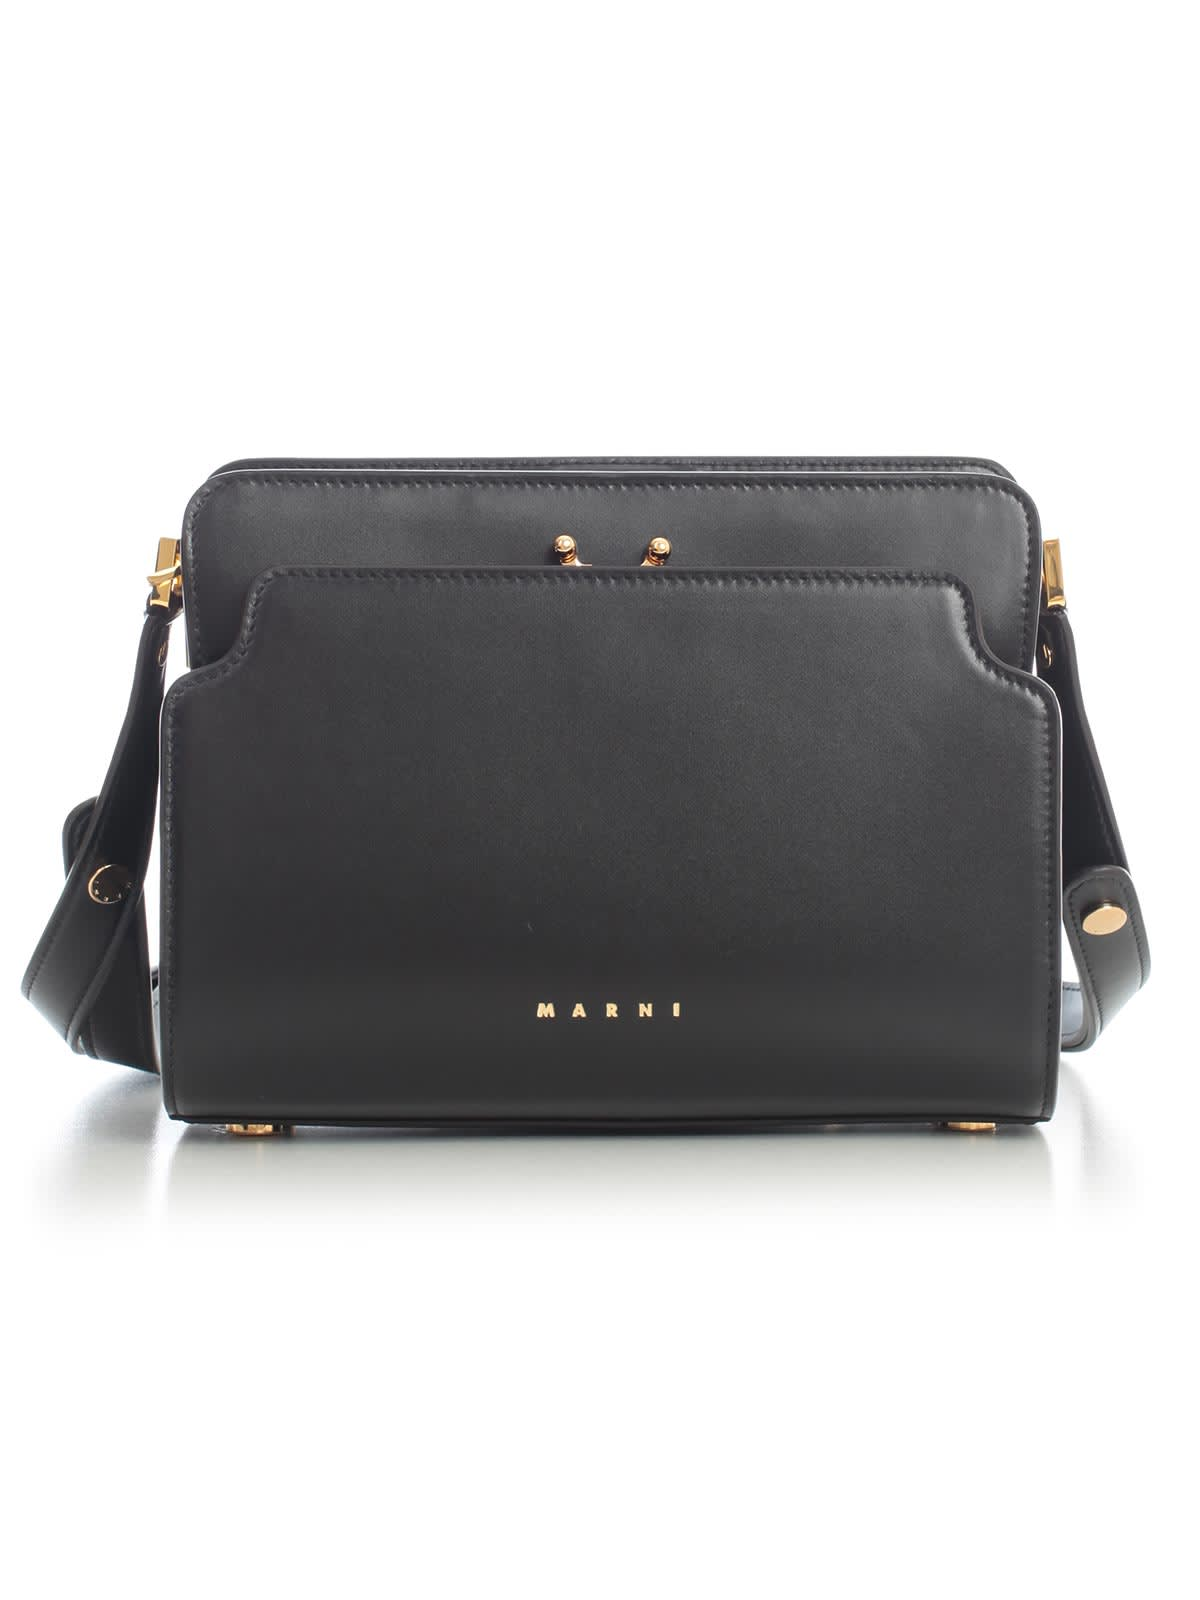 Marni Shoulder Bag Leather